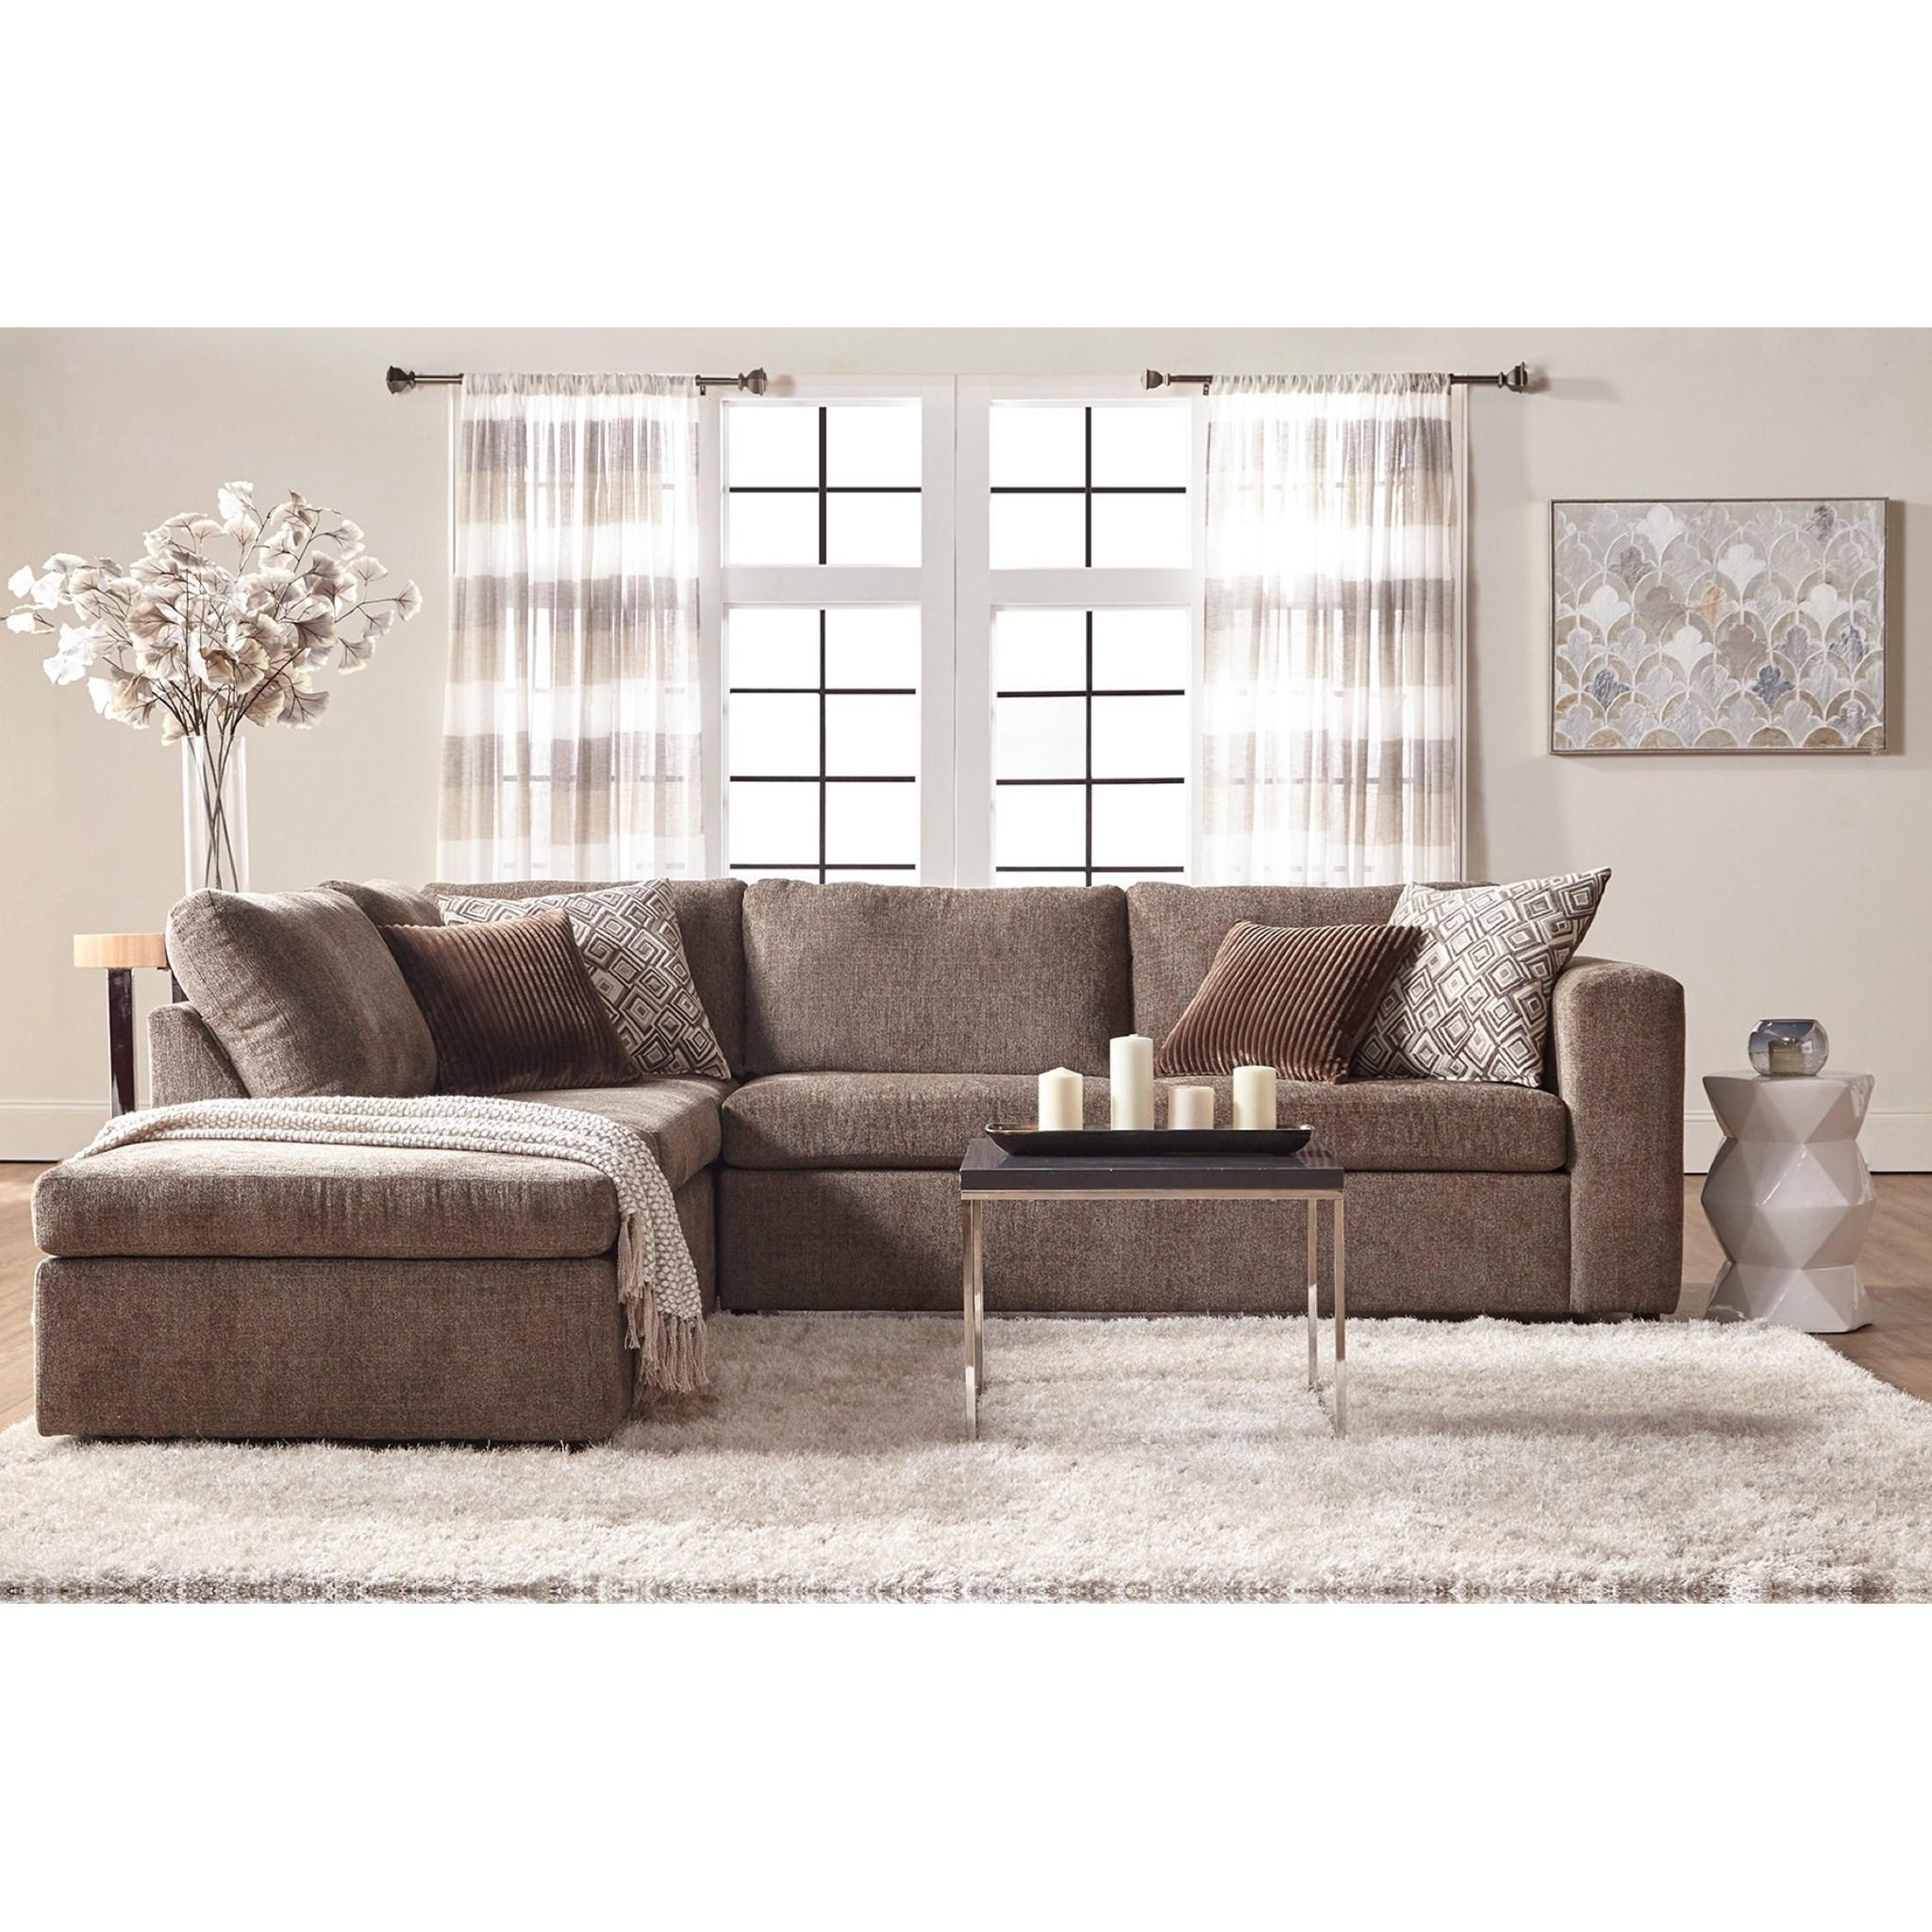 Serta Upholstery Angora Casual Contemporary Sectional Sofa With Regarding Serta Sectional (View 2 of 20)